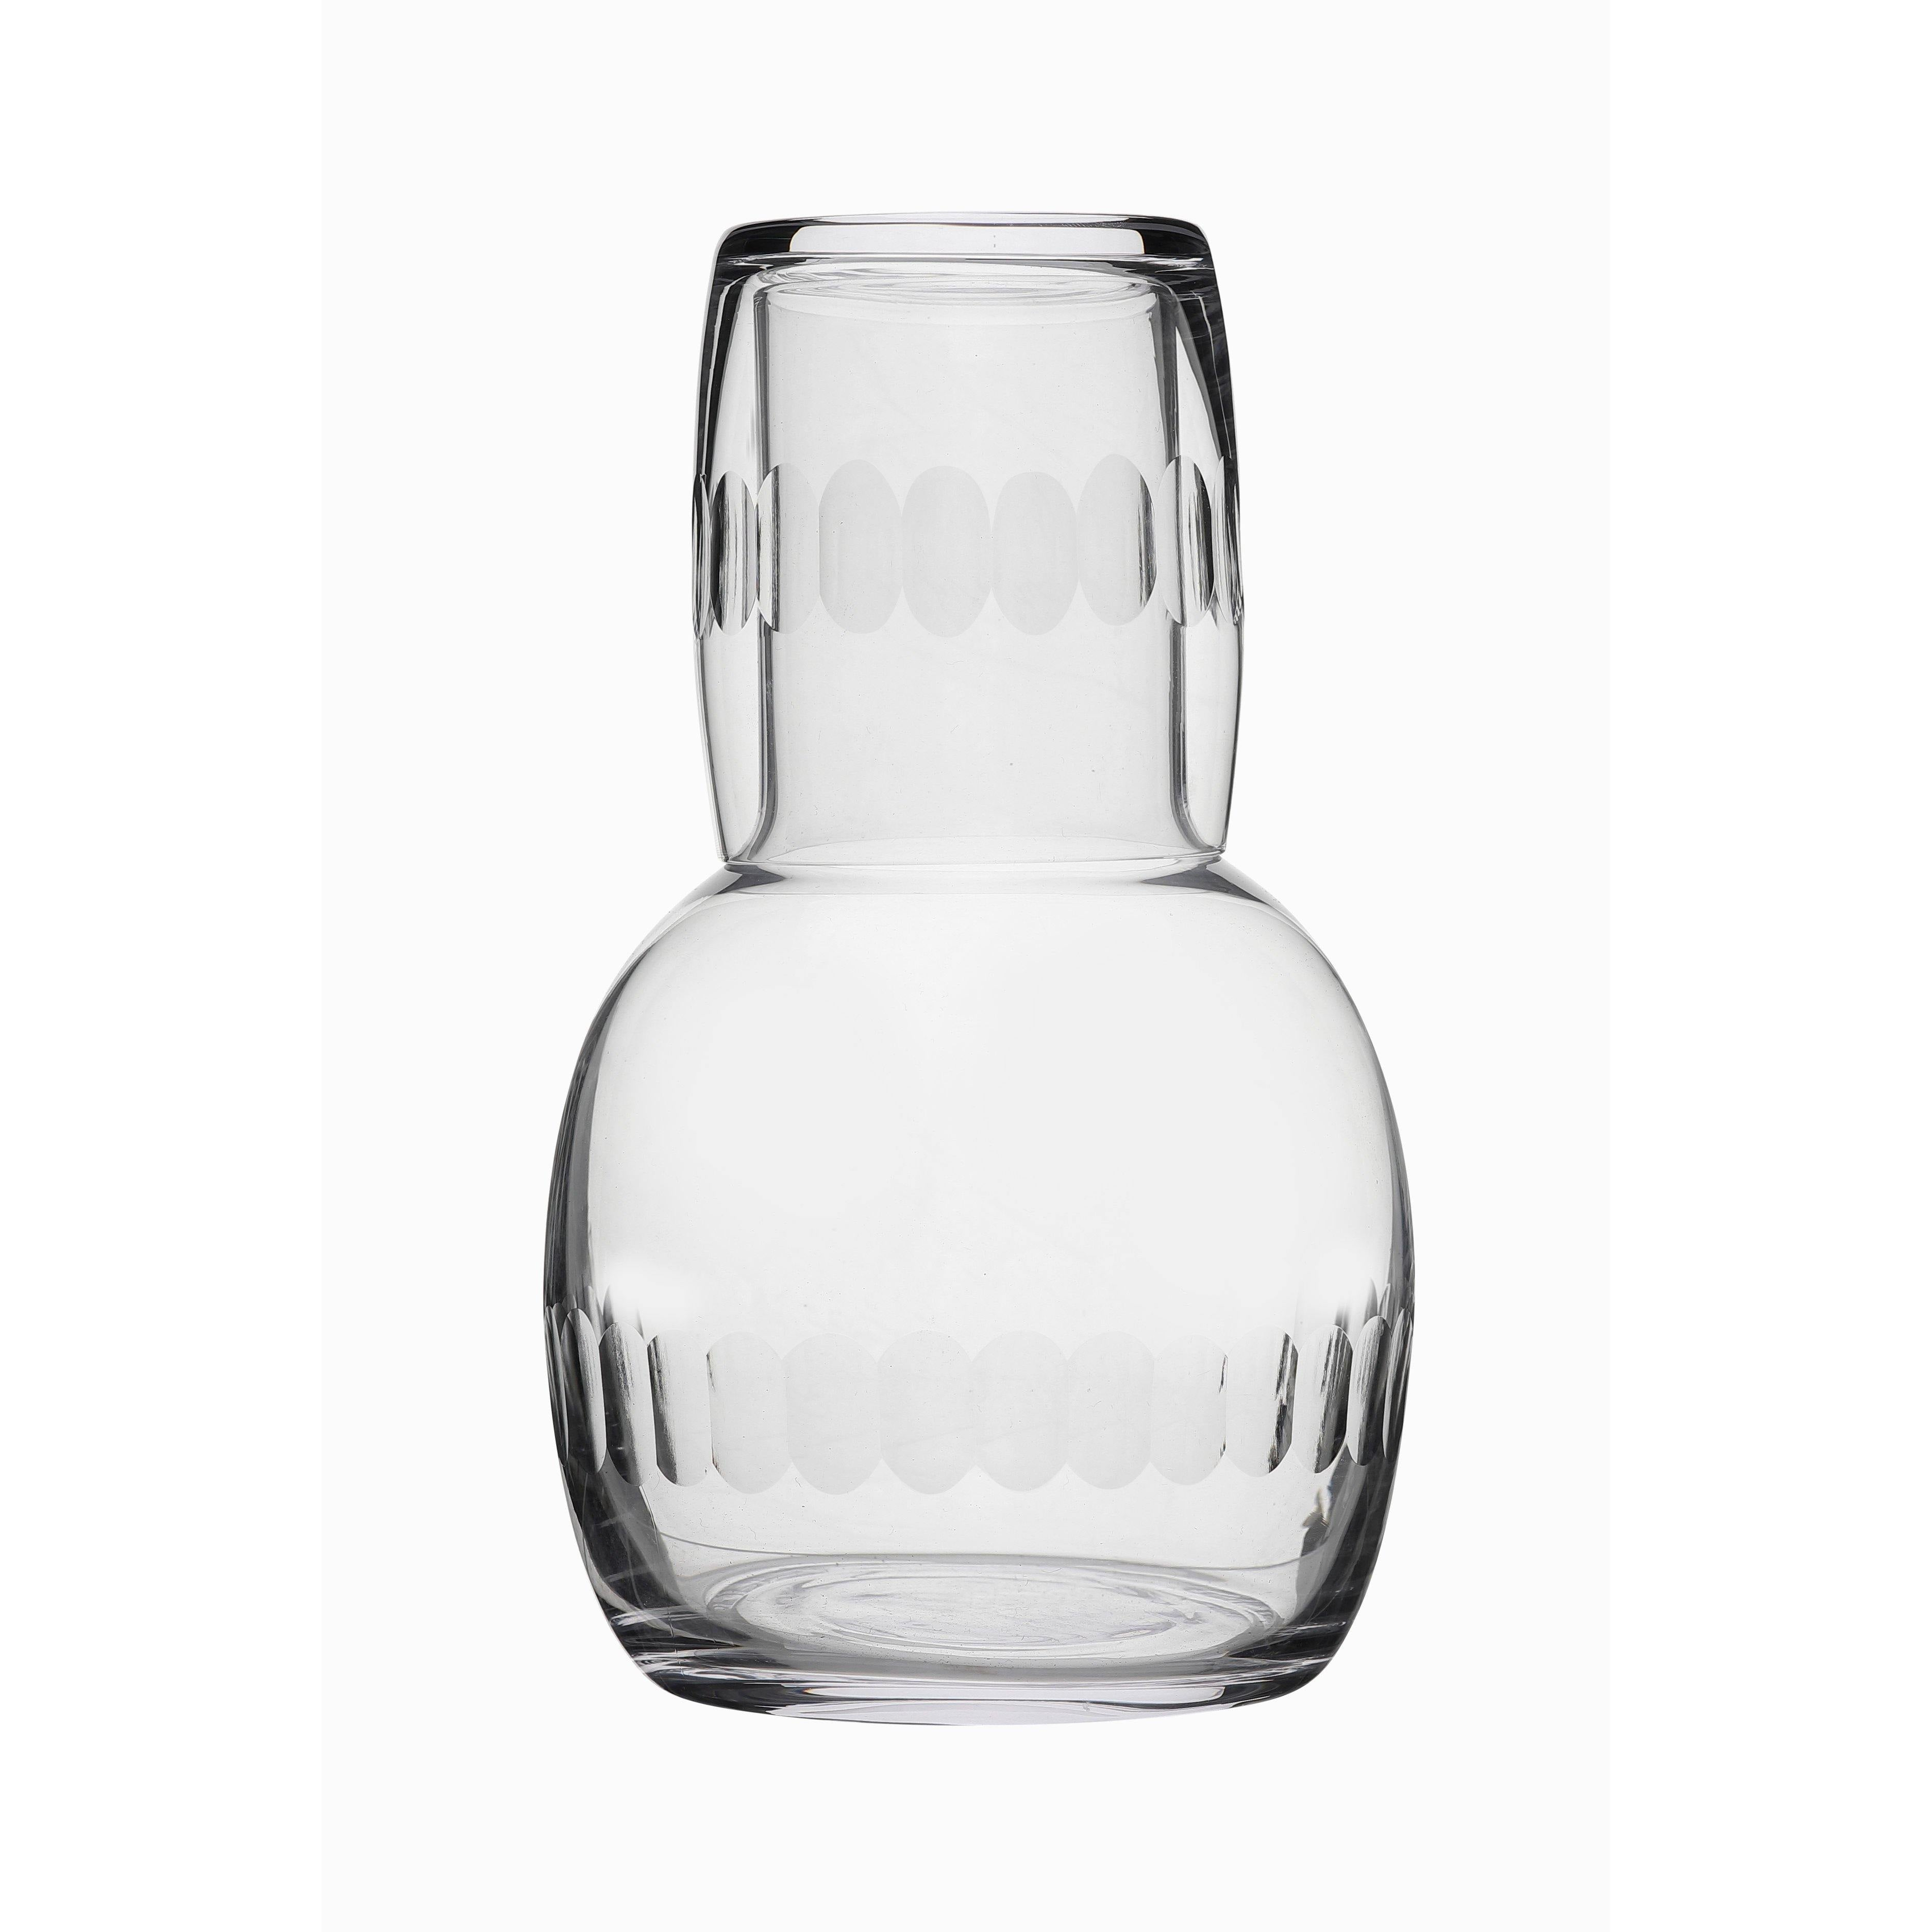 Carafe with Glass and Lens Design